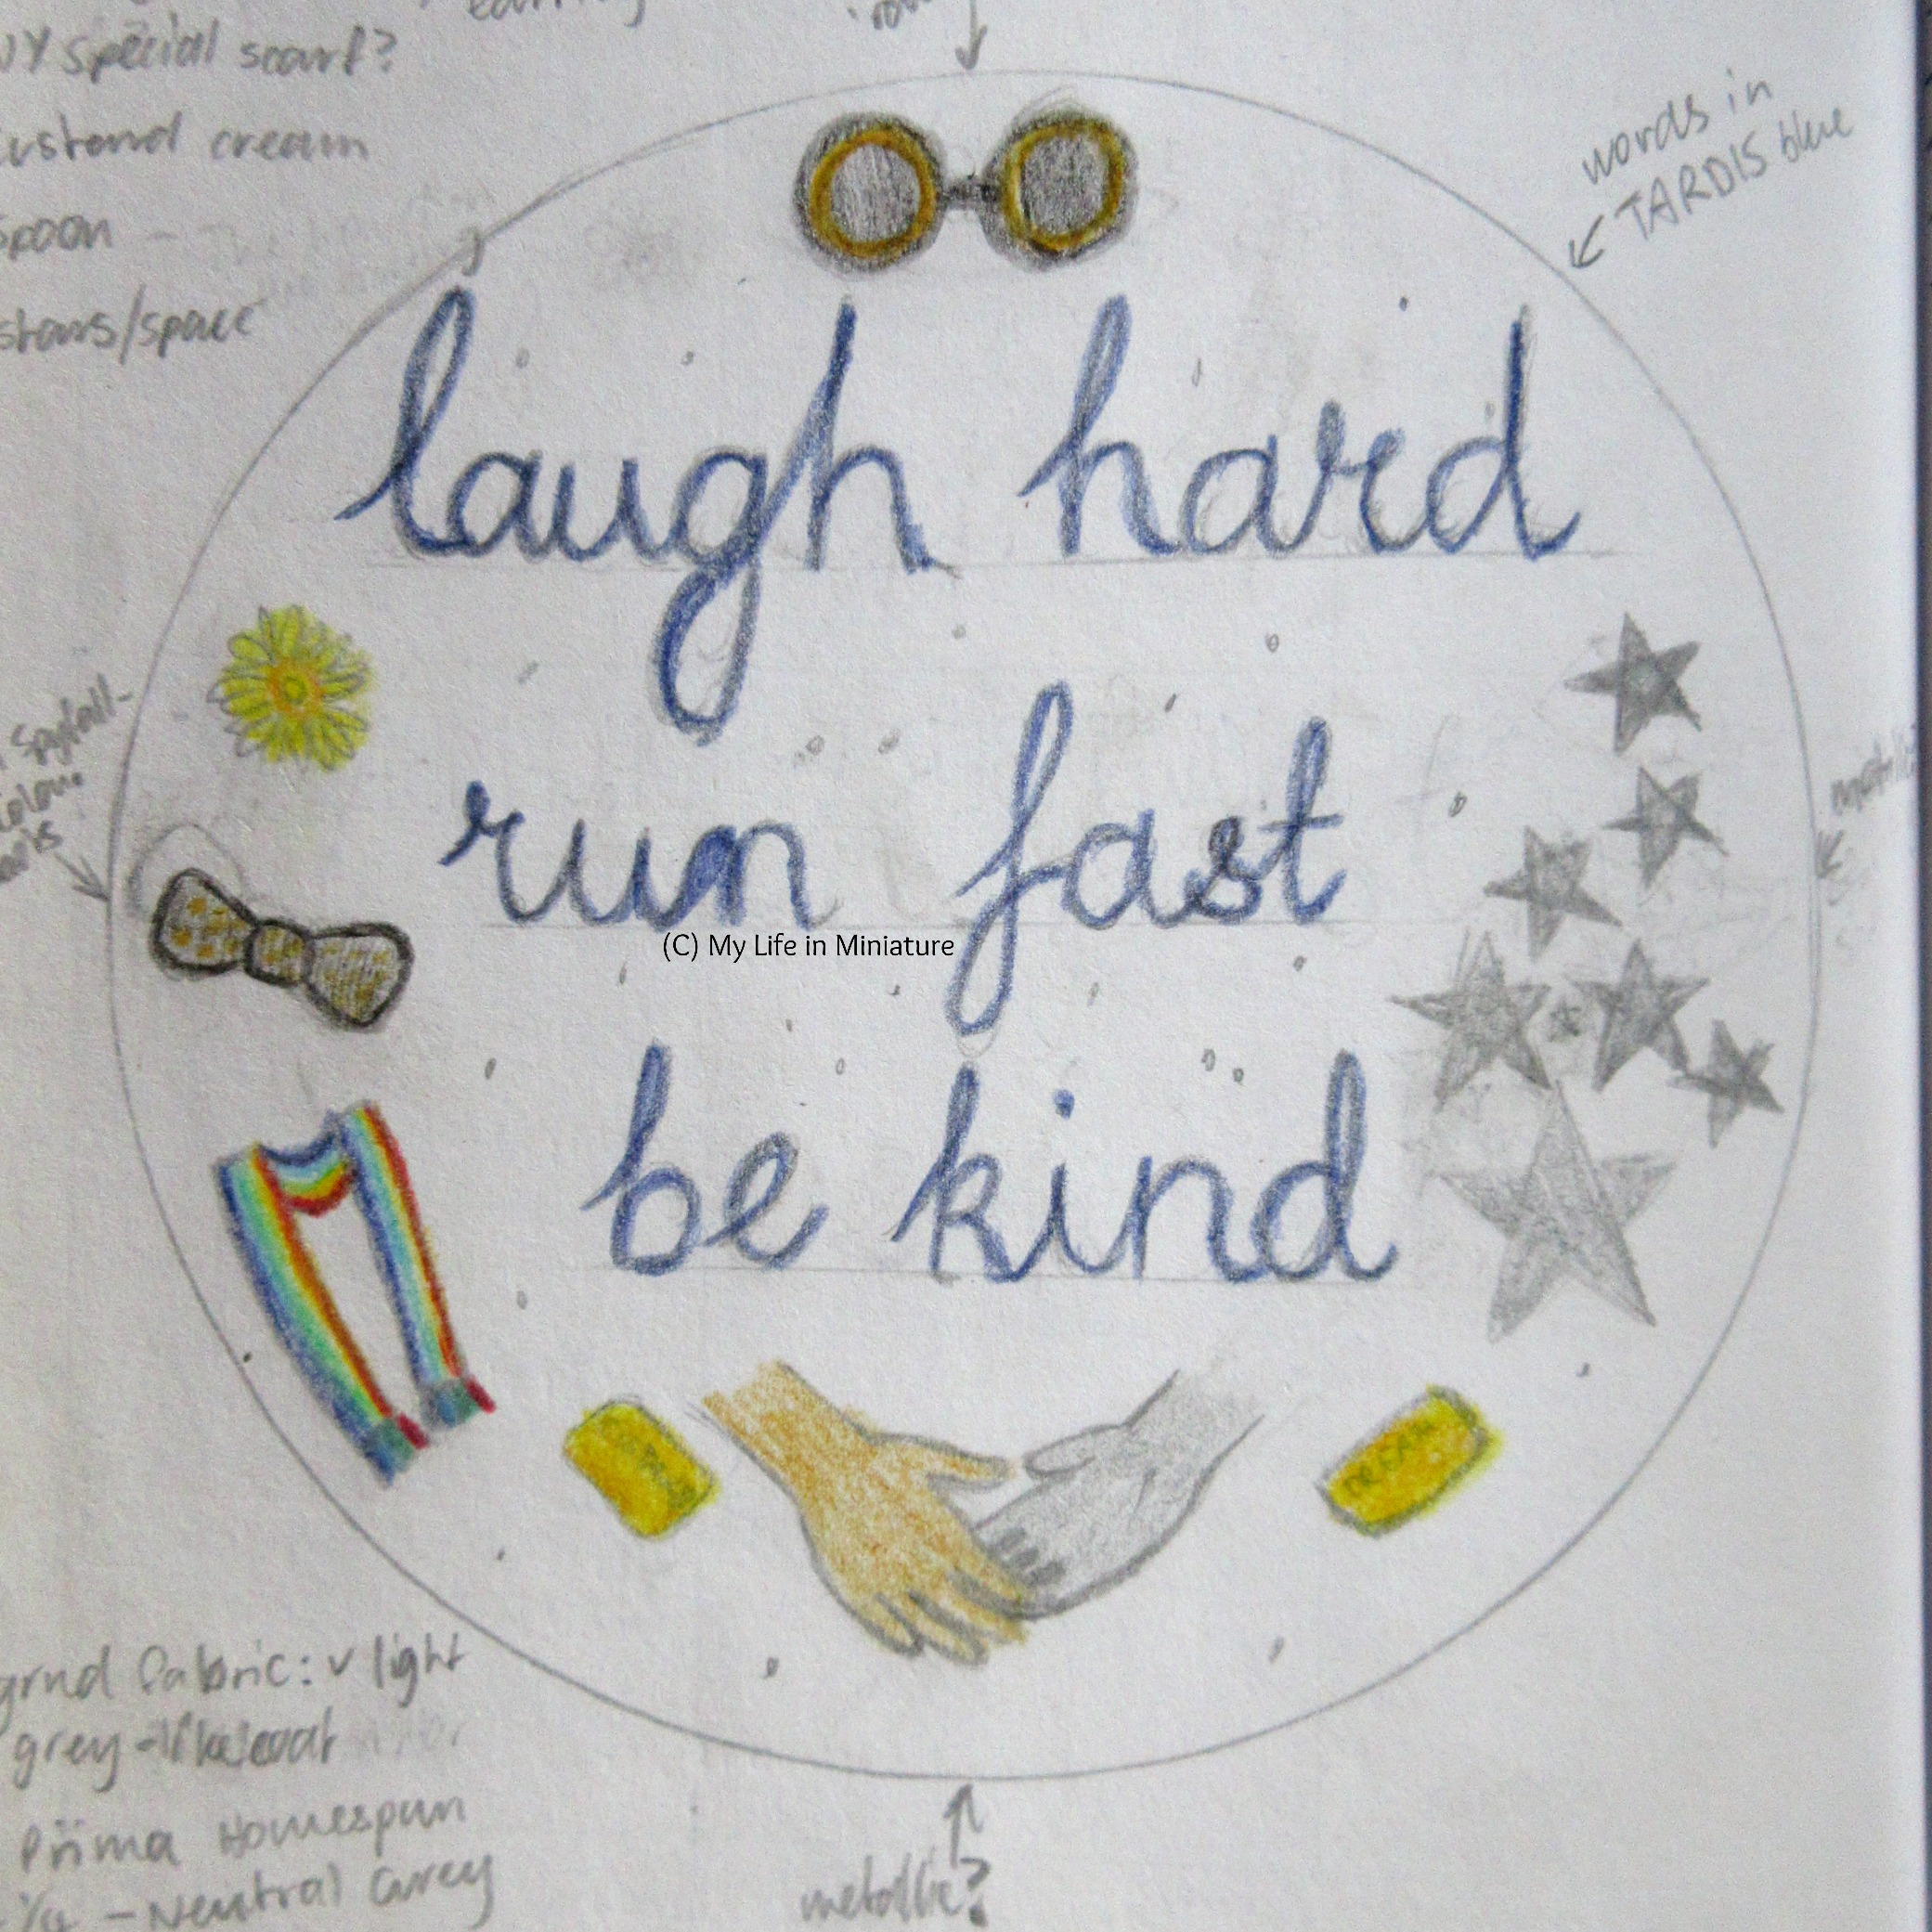 The design for the hoop, clearly hand-drawn. The phrase 'laugh hard; run fast; be kind' is written in dark blue cursive in the centre. Surrounding it are various objects symbolic of the Thirteenth Doctor, including black and bronze steampunk goggles, a daffodil head, a black and gold bow tie, a rainbow-striped scarf, two custard cream biscuits, a pair of shaking hands, and eight silver stars.